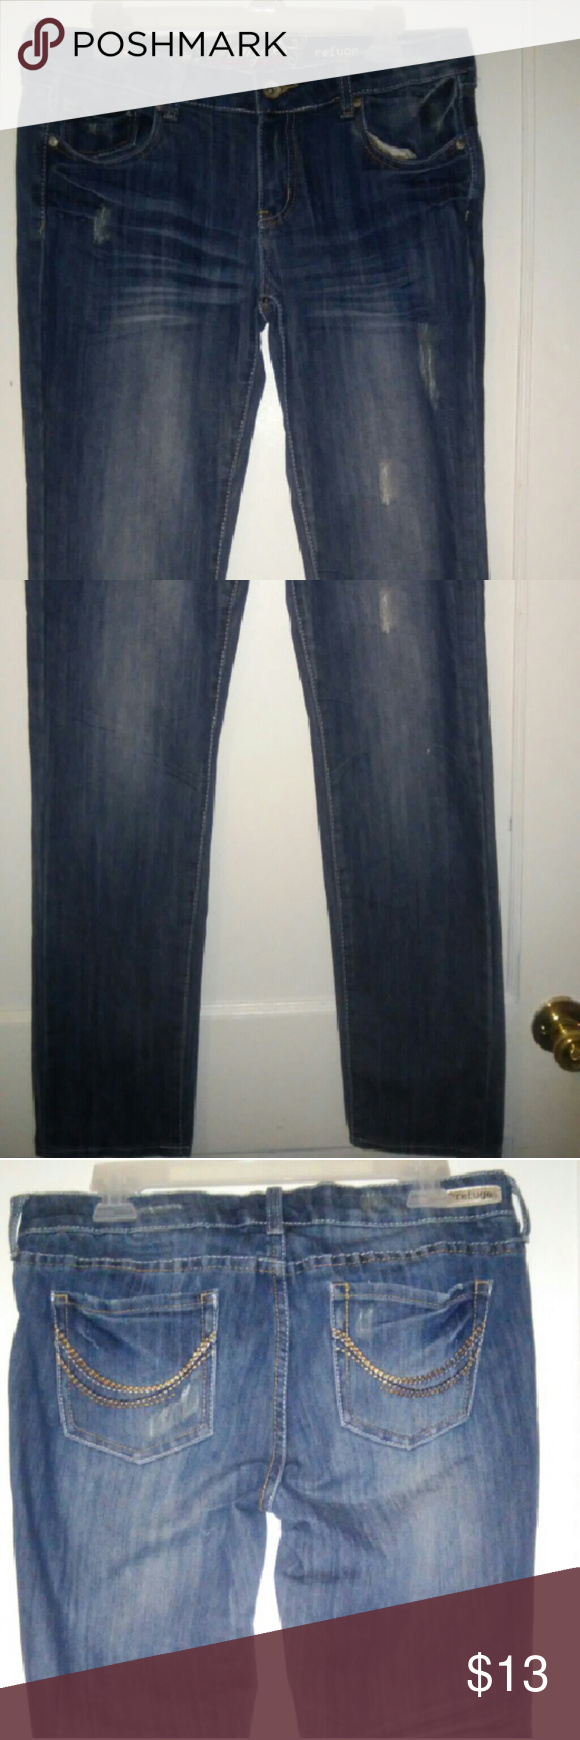 Refuge flirty everyday skinny jeans Jeans have a distressed look on front and back.60%cotton,39%polyester,1%spandex refuge Jeans Skinny